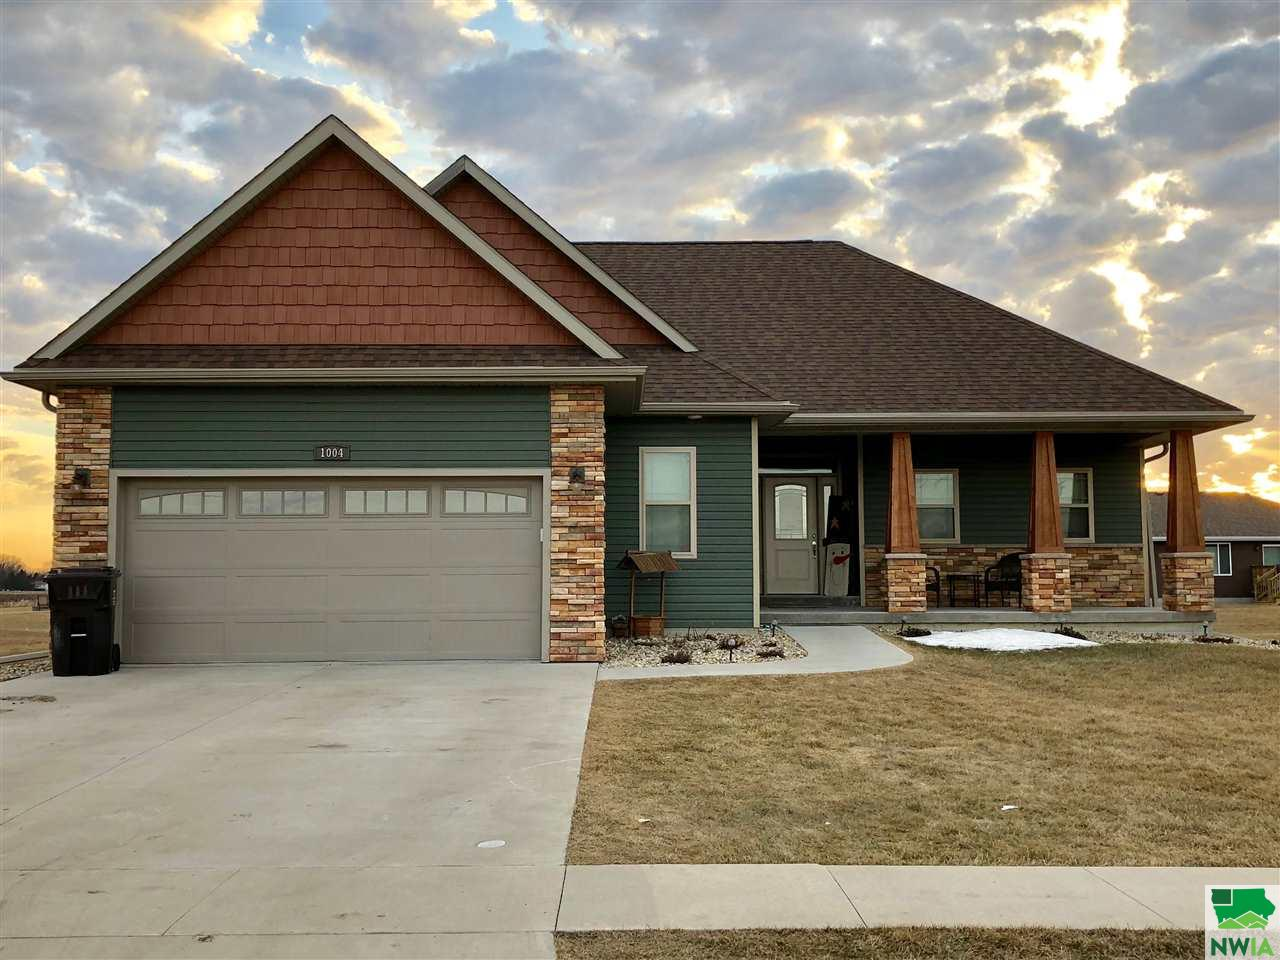 Property for sale at 1004 Coffie Farm Rd, Sergeant Bluff,  IA 51054